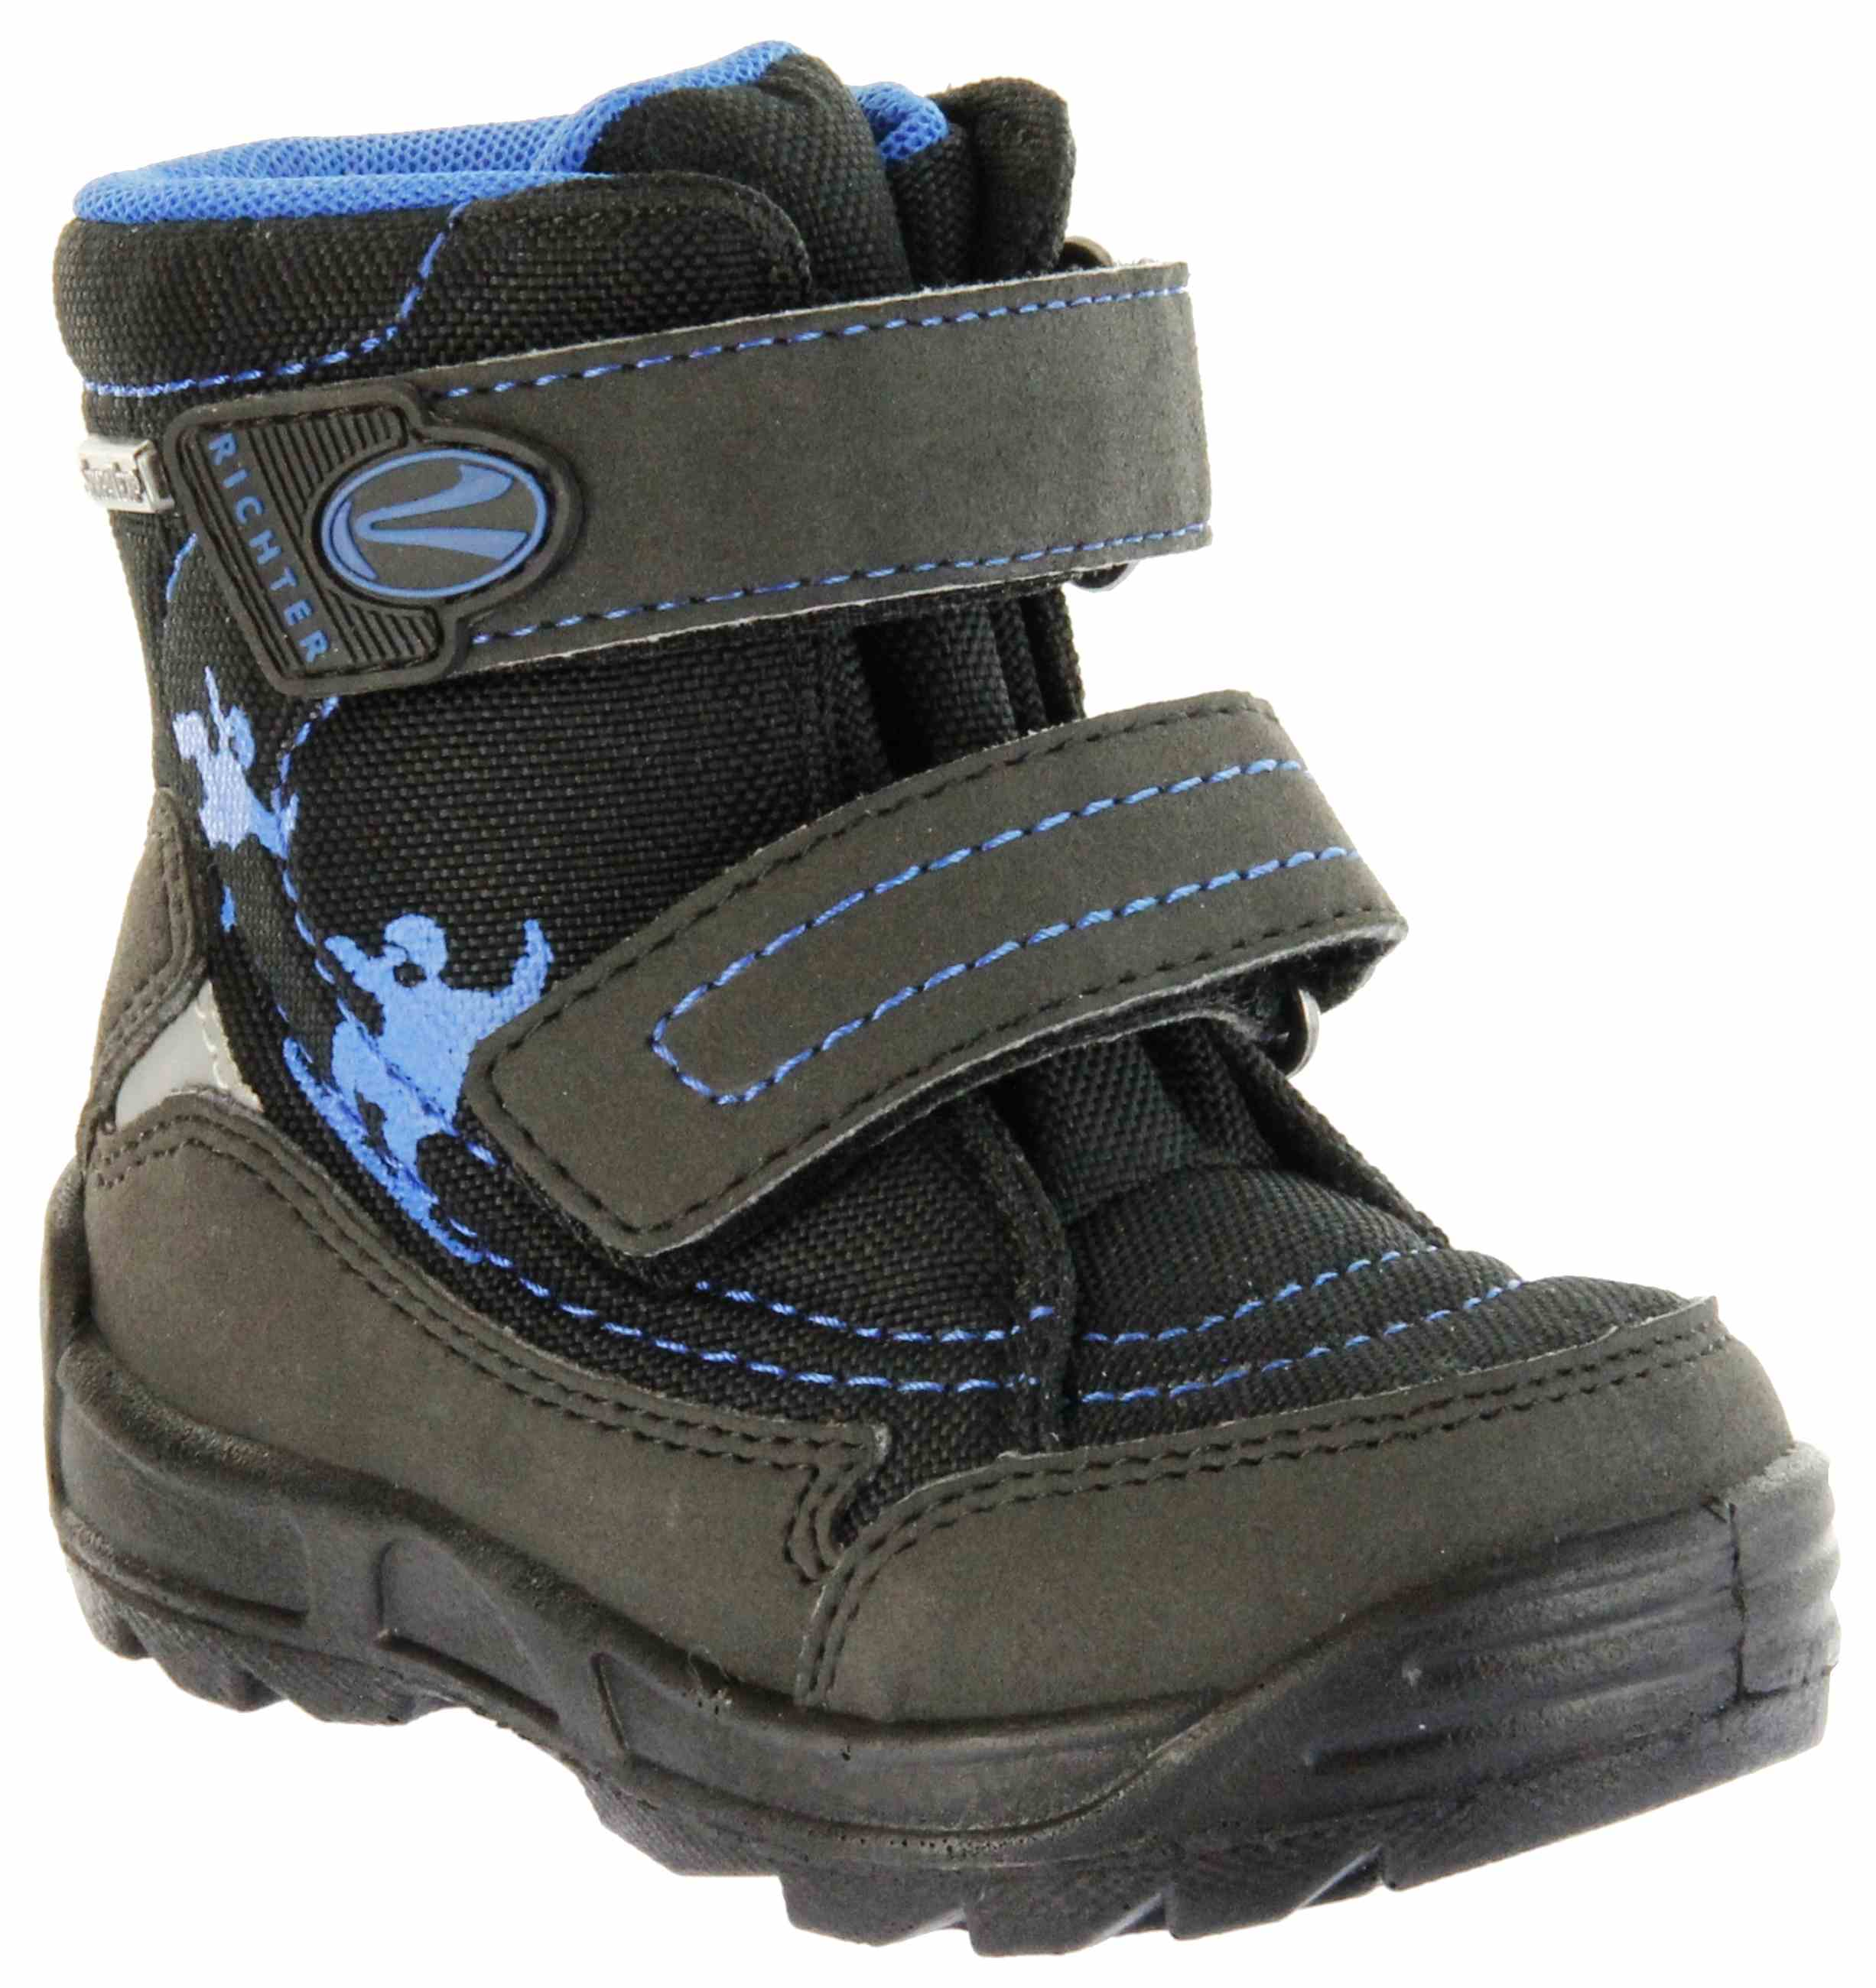 info for 9a804 53216 Richter Kinder Lauflerner-Stiefel SympaTex schwarz Warm Jungen WMS  2032-831-9902 black Freestyle